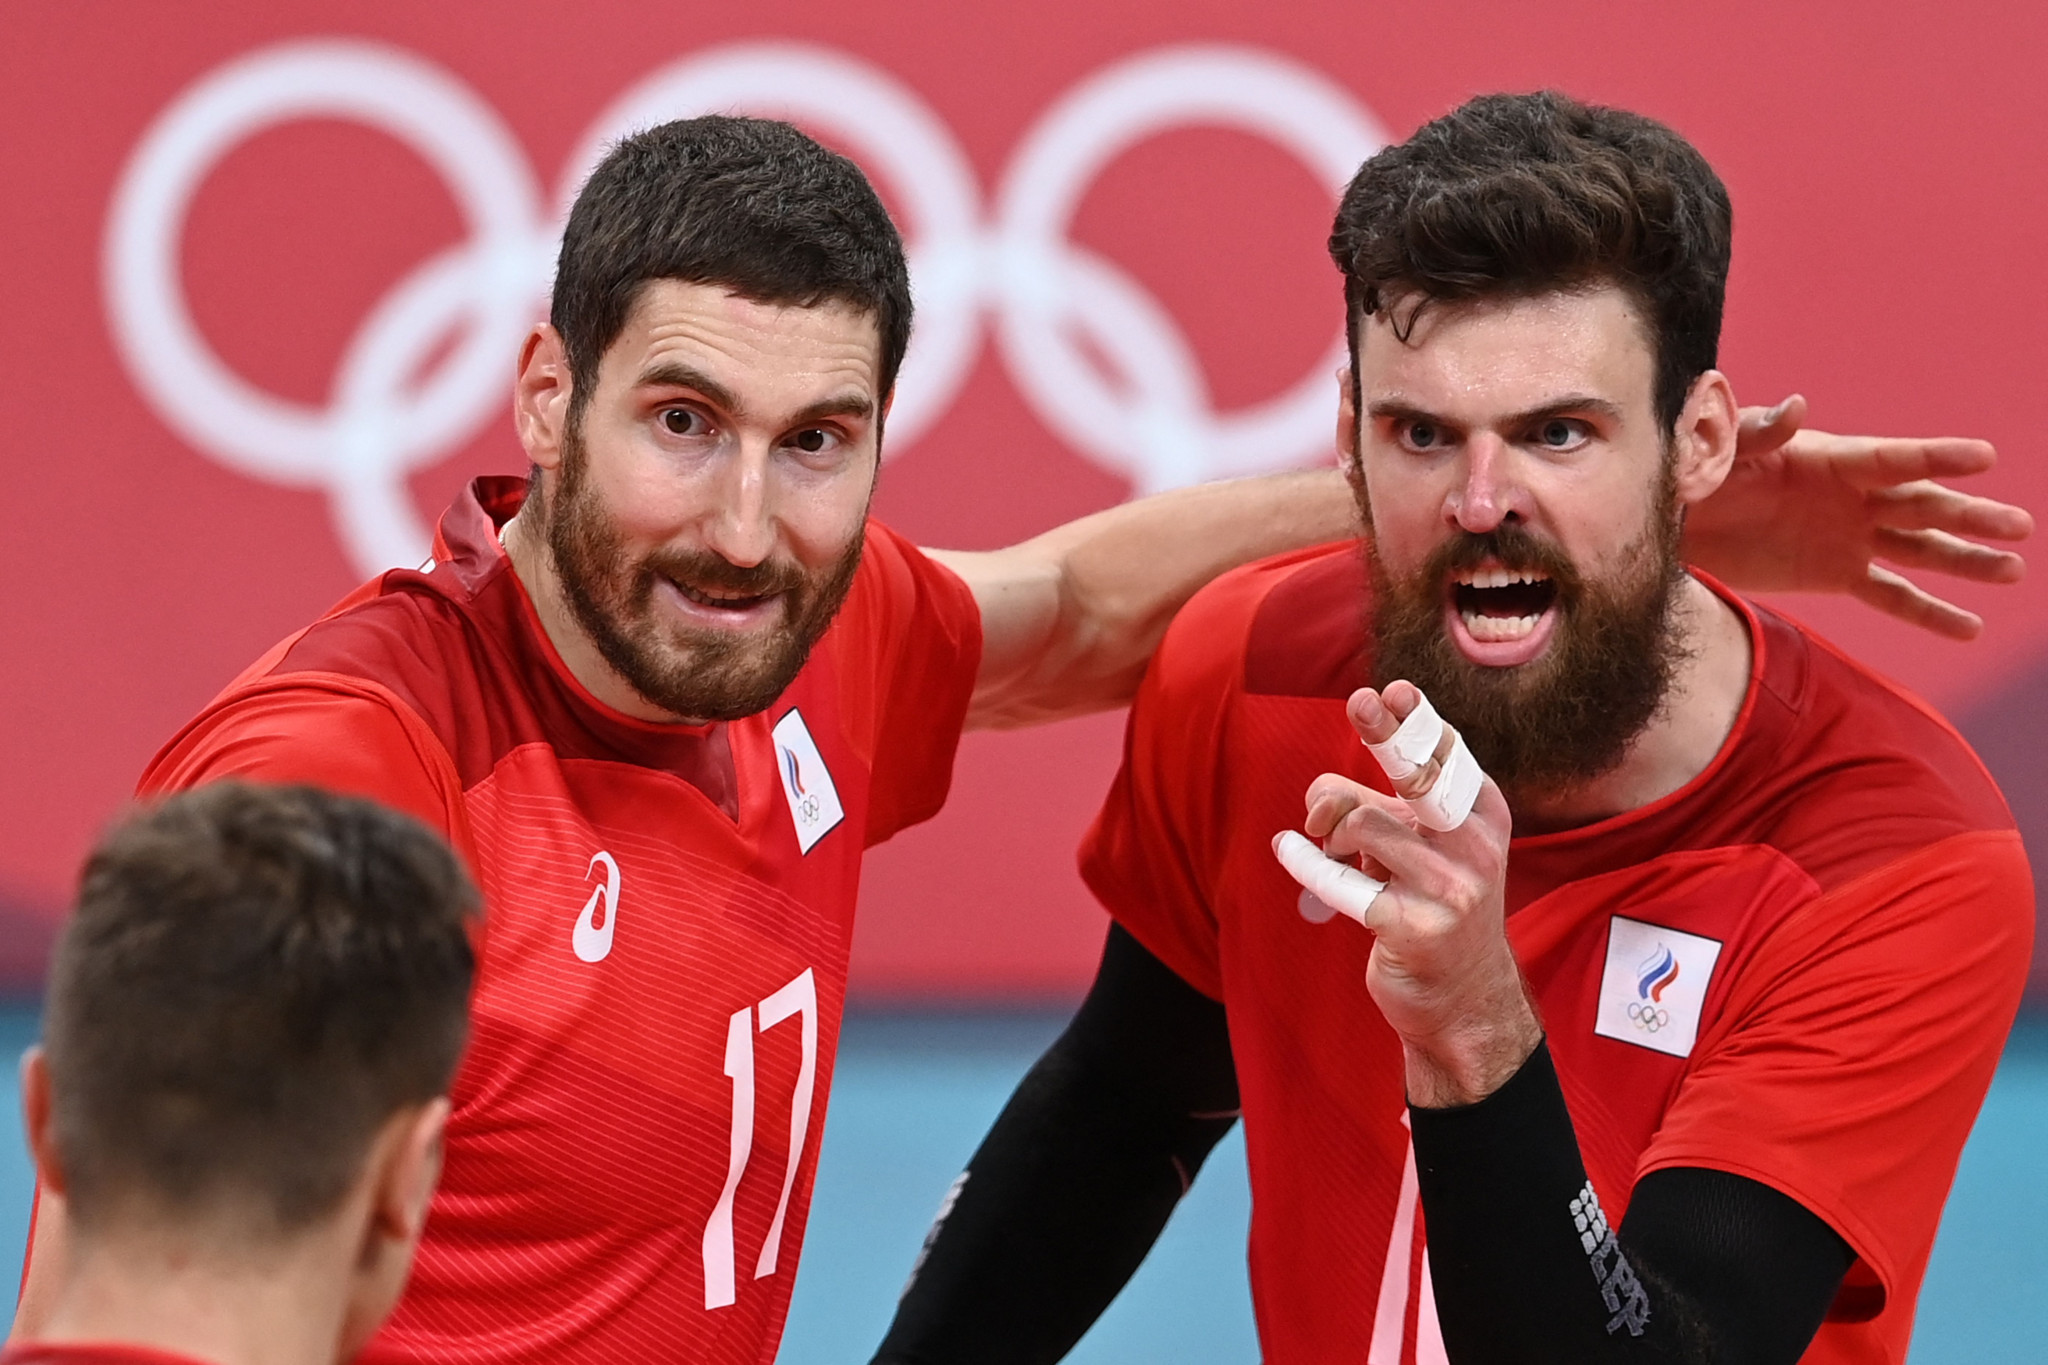 Maksim Mikhaylov, left, and Egor Kliuka led the ROC team to the men's volleyball silver medal at Tokyo 2020 ©Getty Images